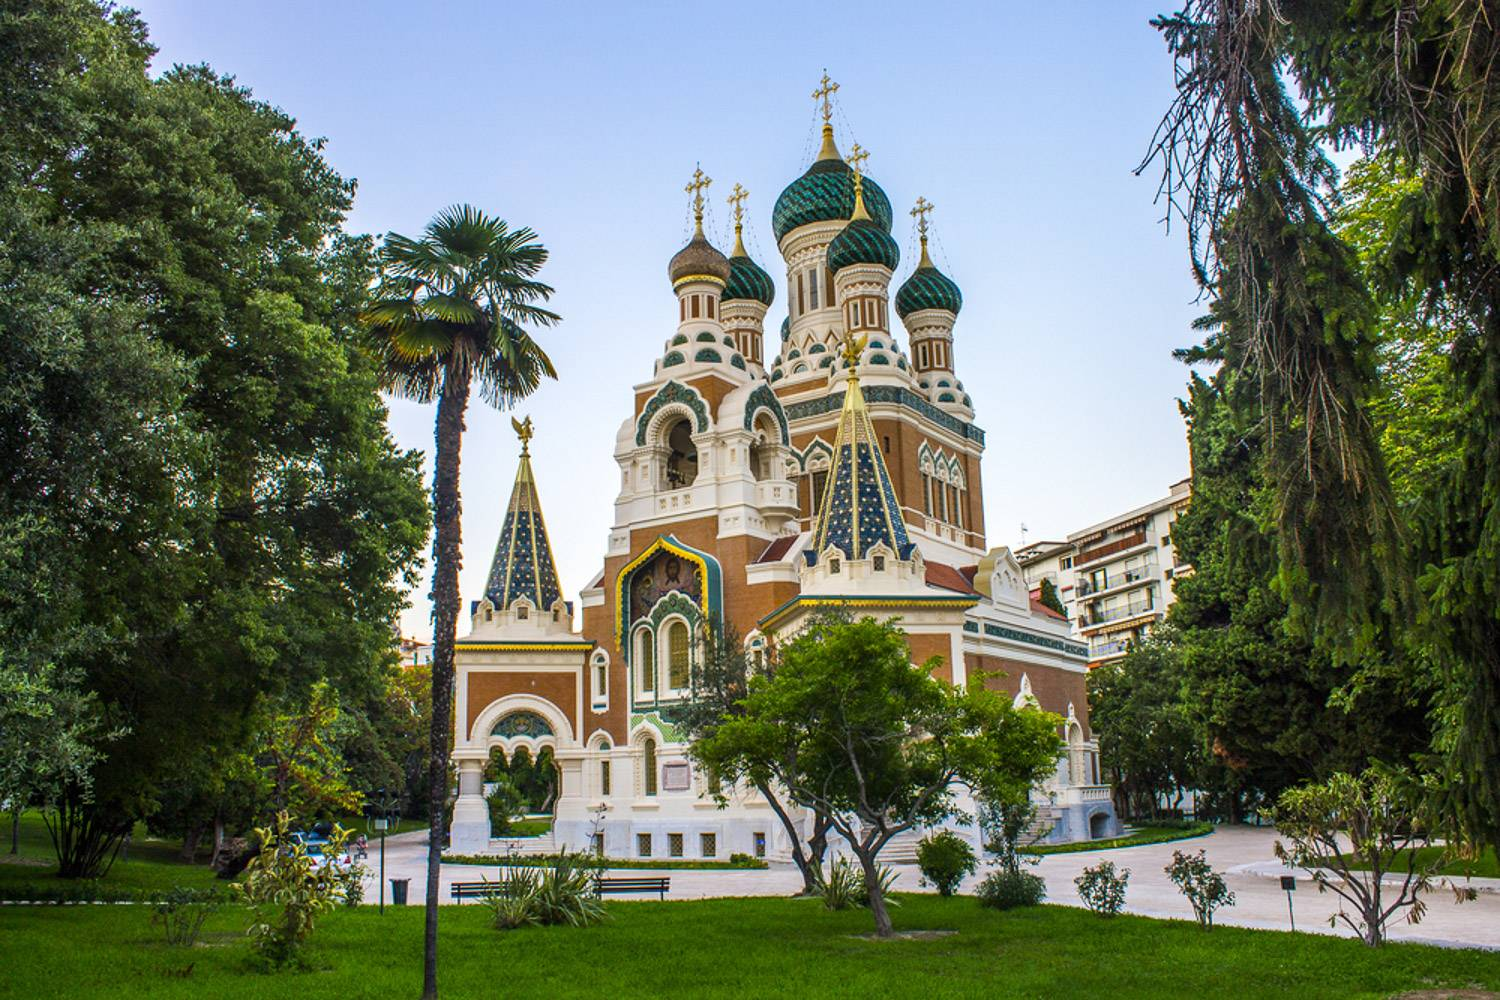 Image of the St. Nicholas Russian Orthodox Cathedral in Nice.